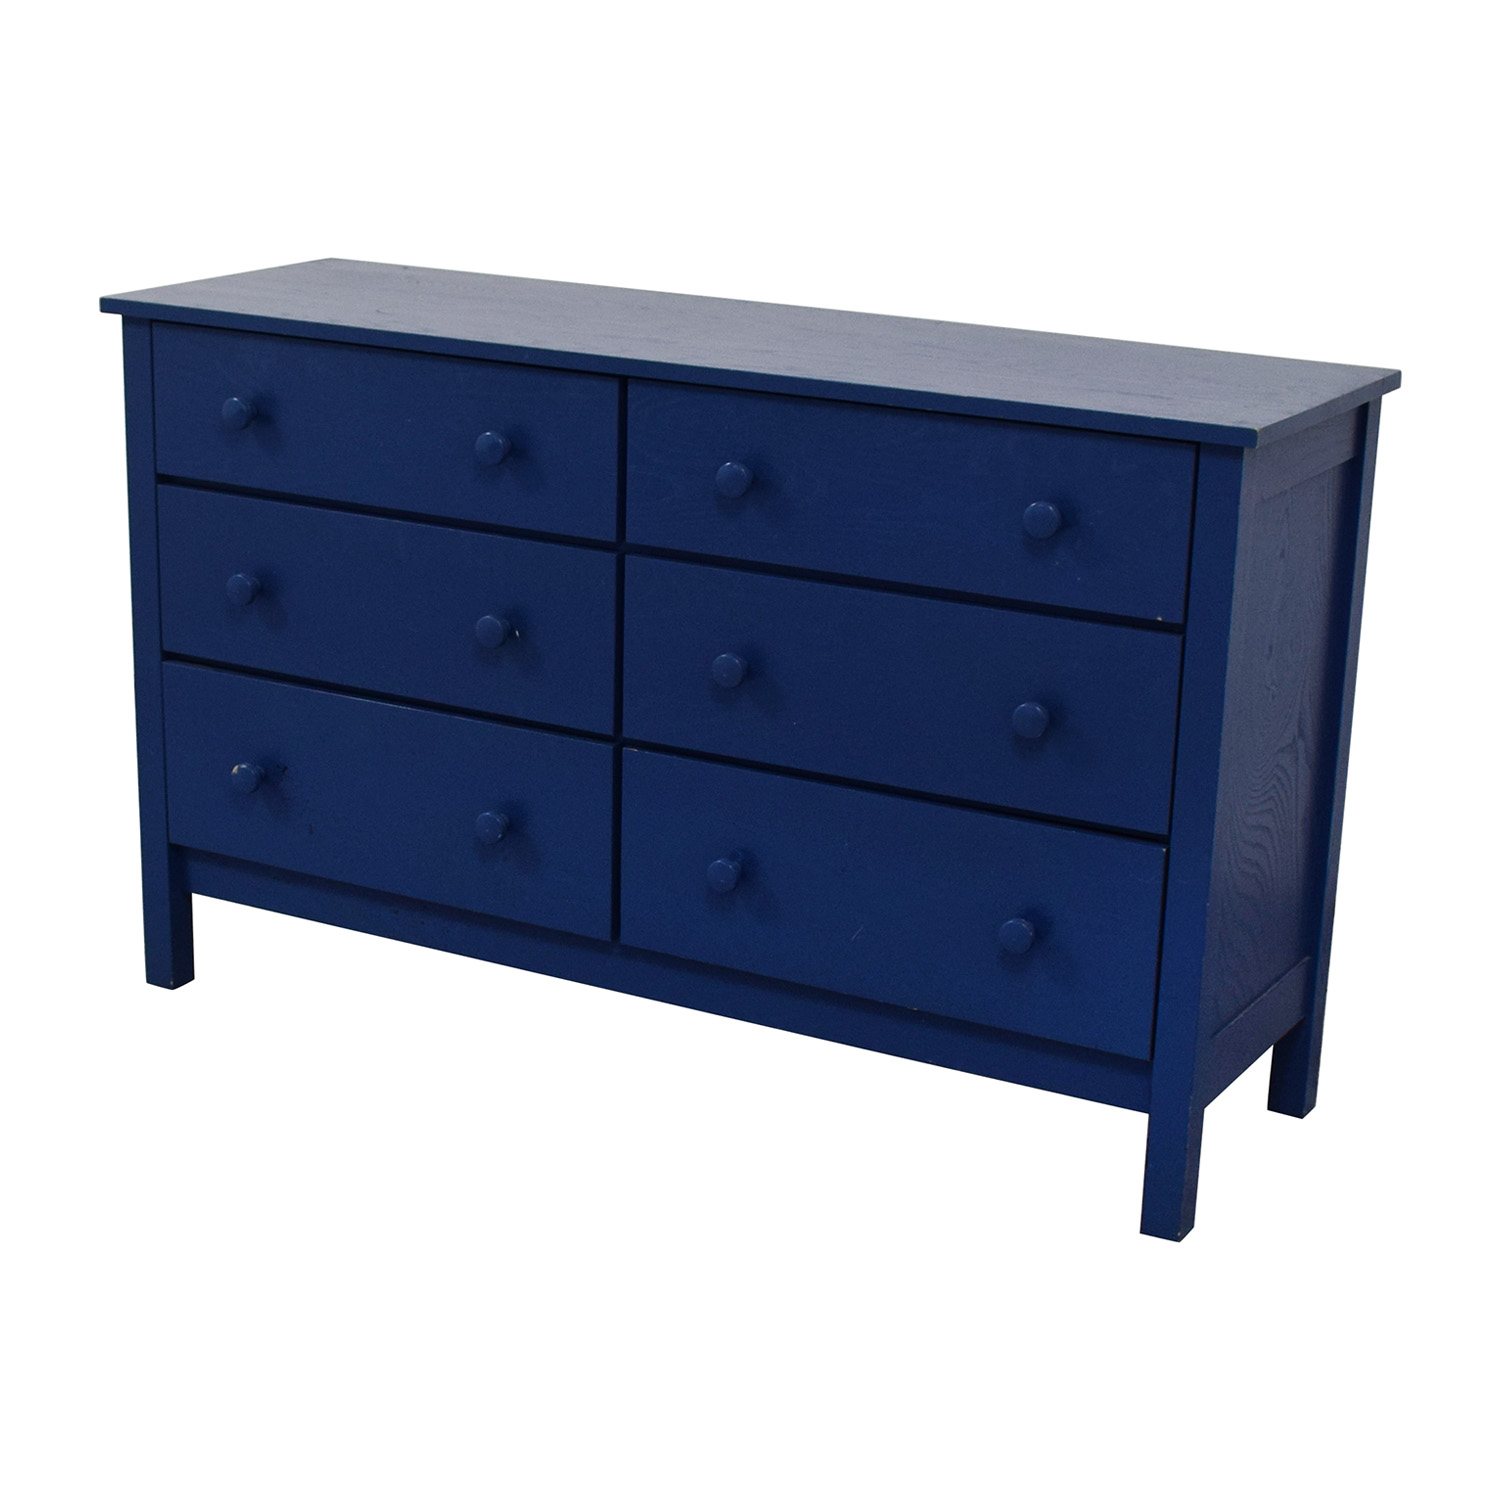 Spectra Wood Blue Six-Drawer Dresser